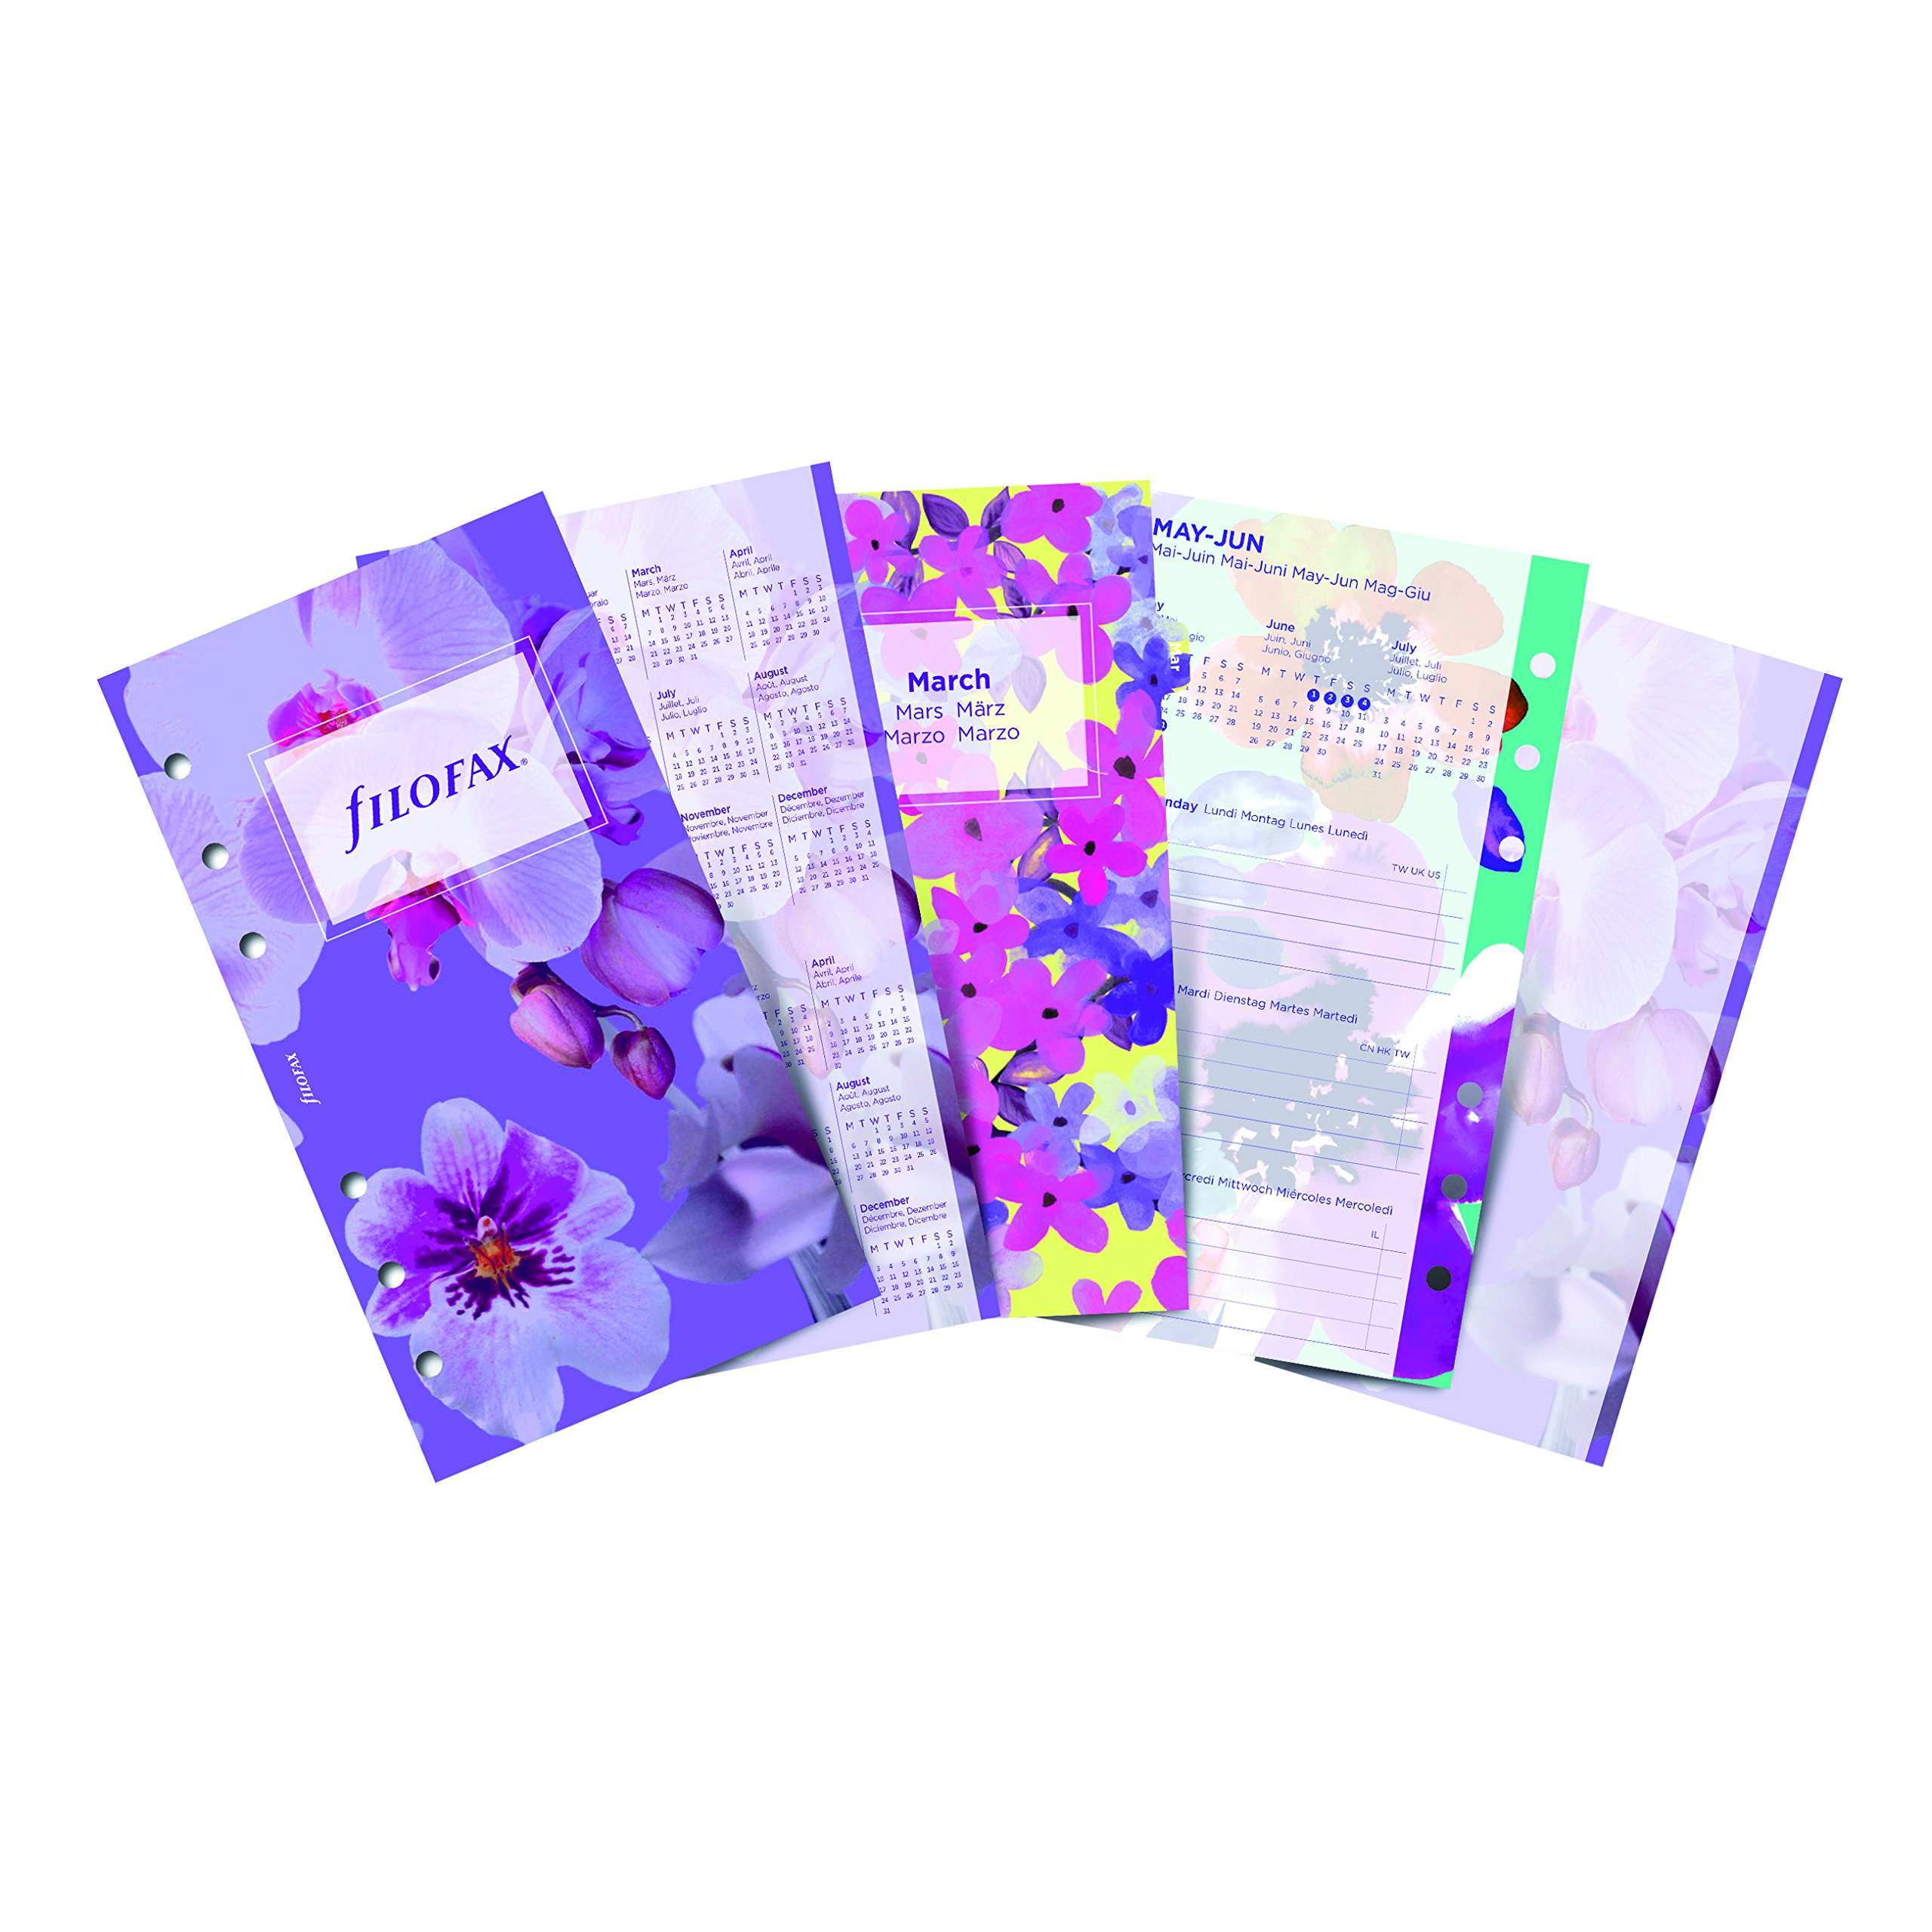 Filofax 2018 Refill, Personal/Personal Compact, Week to View, Illustrated Floral, 5 Languages, 6.75 x 3.75 inches (C6341-18)